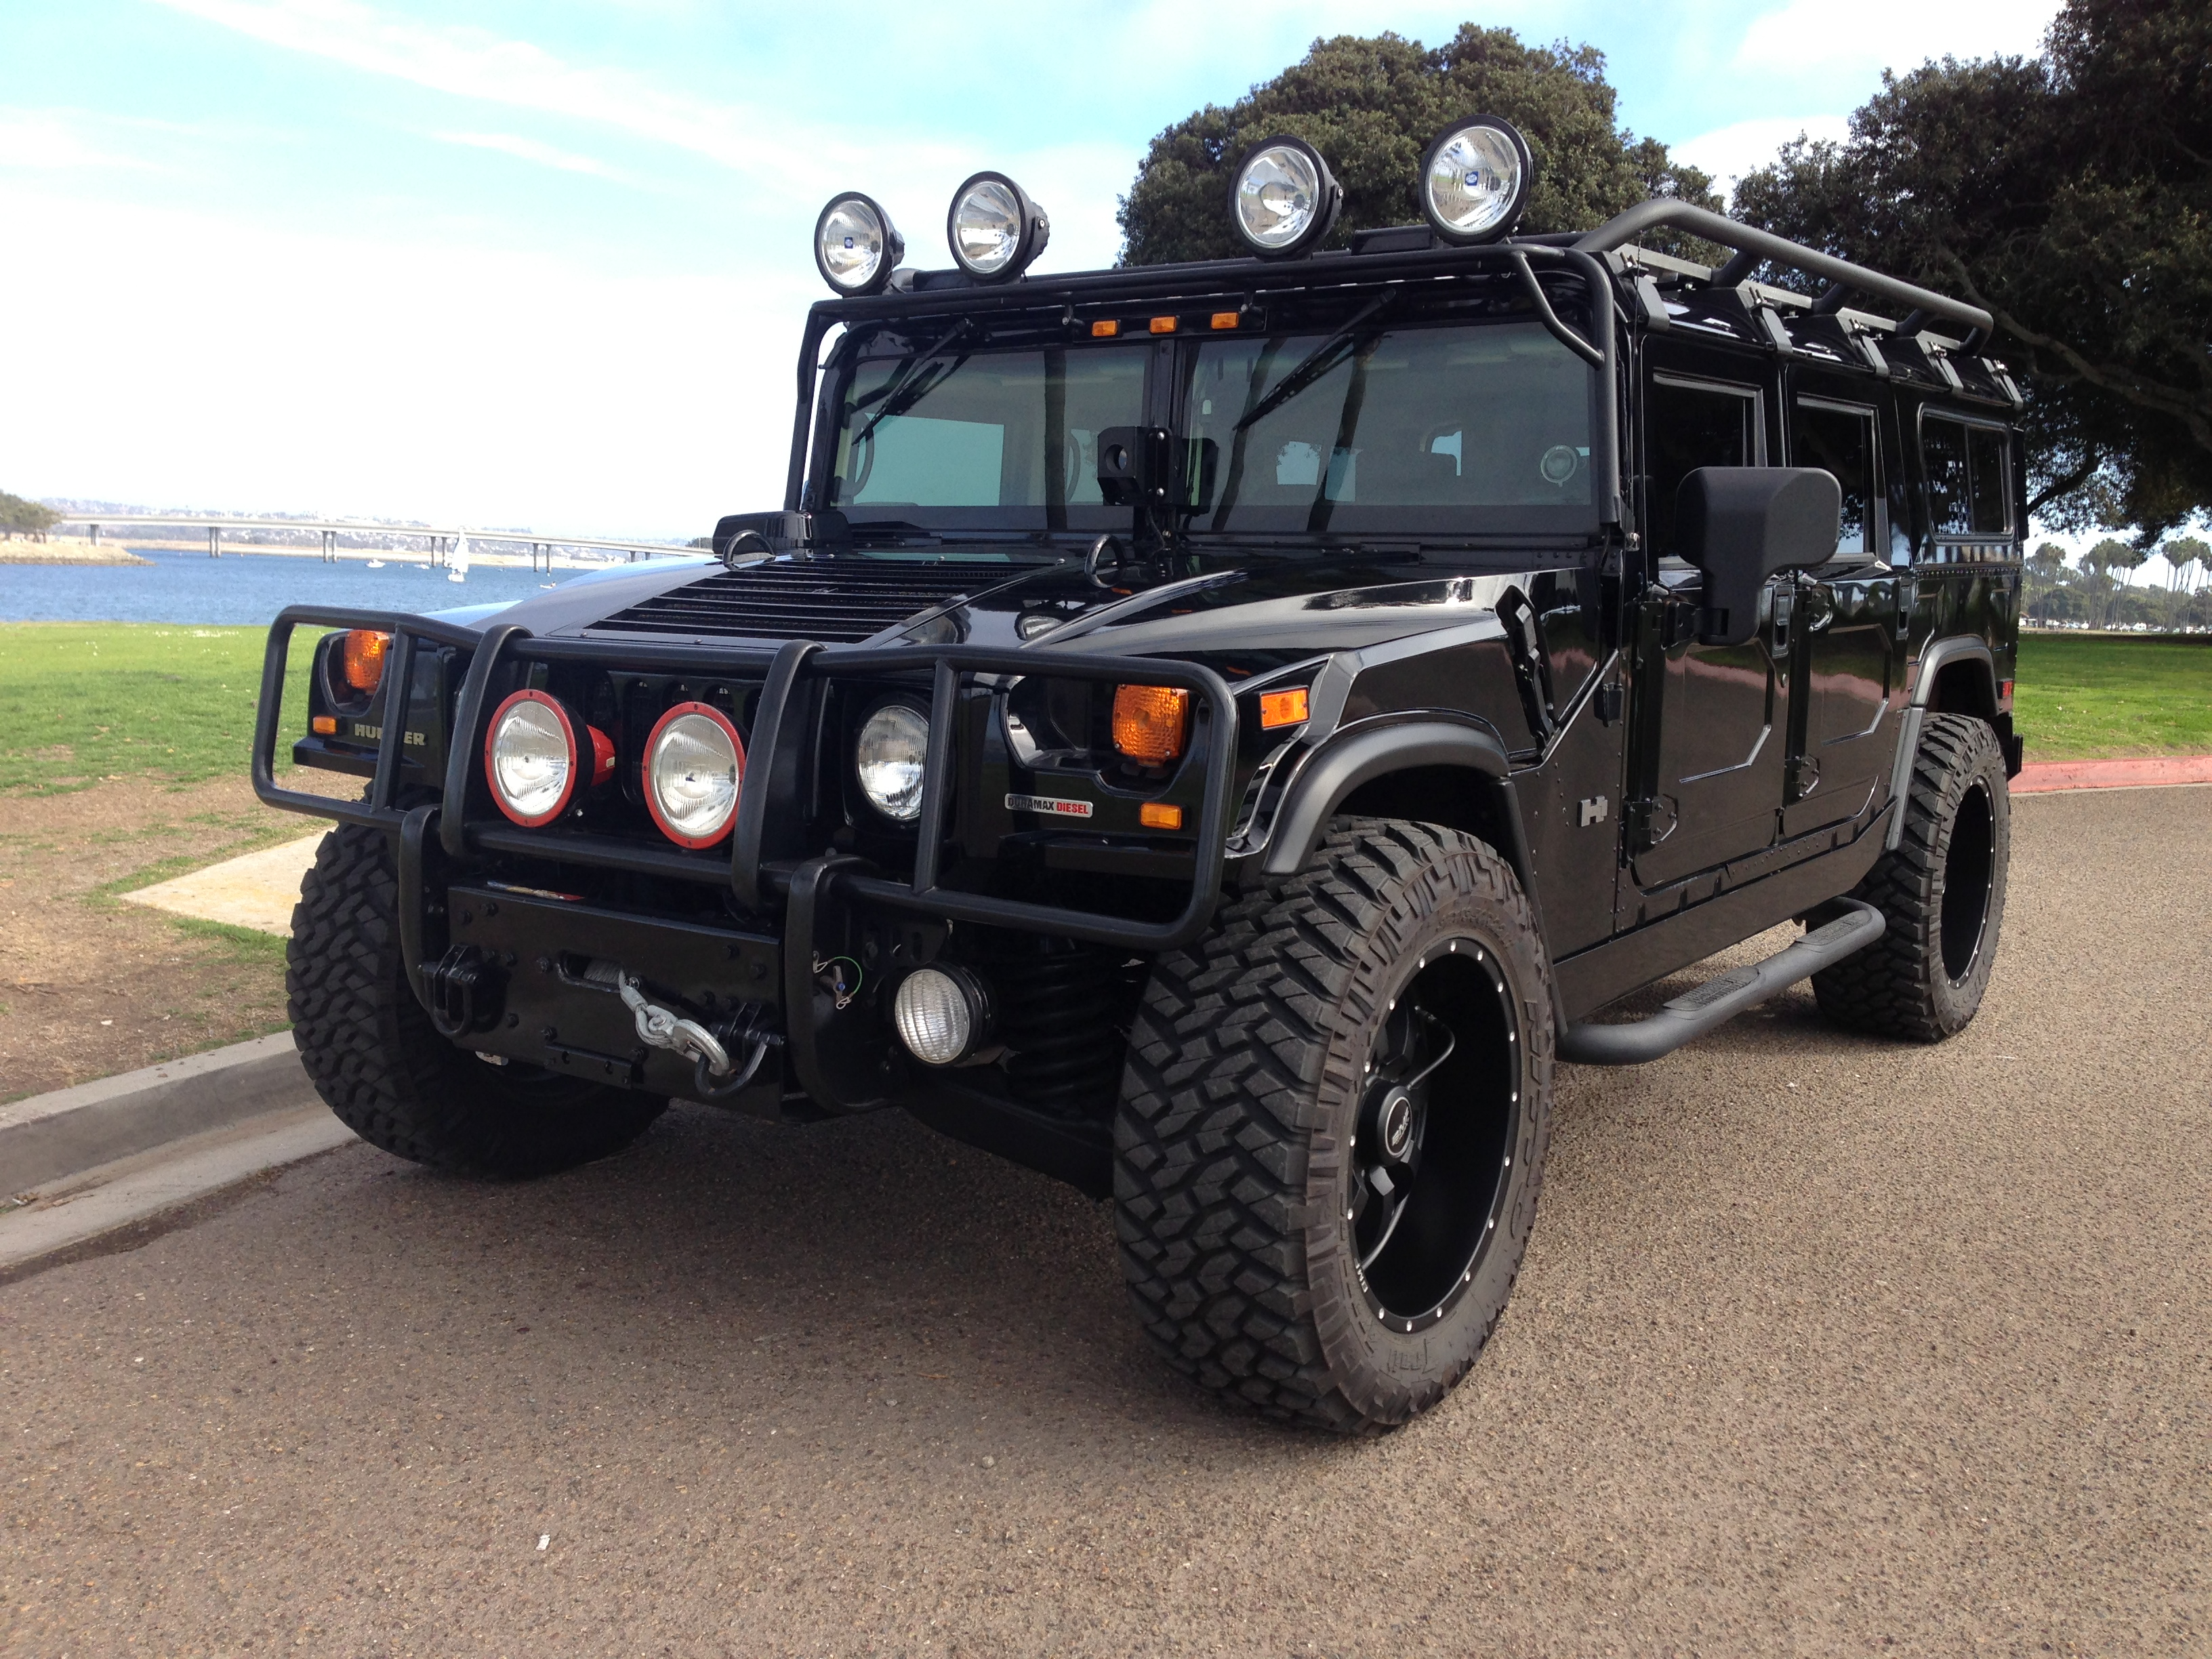 2006 Hummer H1 Alpha Wagon 2nd Generation Black With All